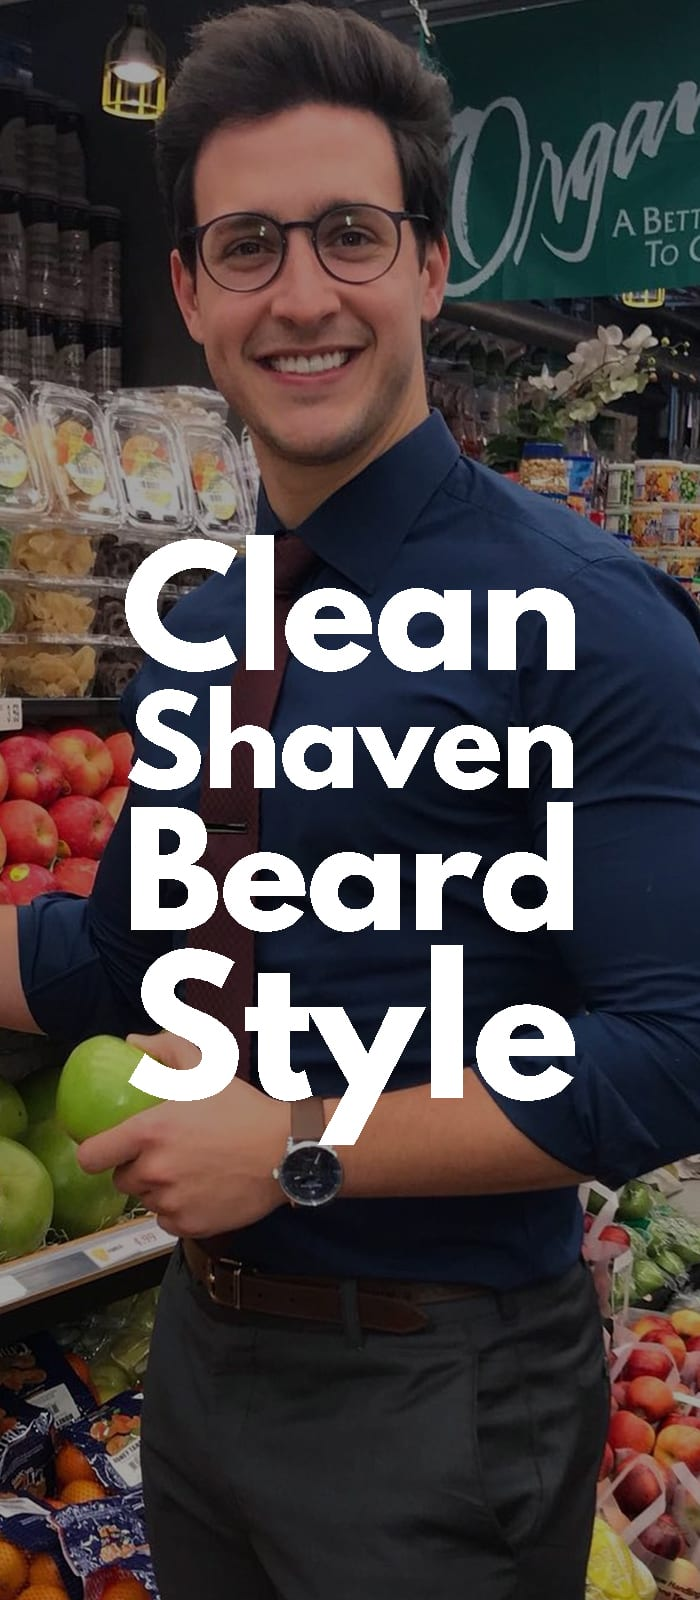 Clean Shaven Beard Style!